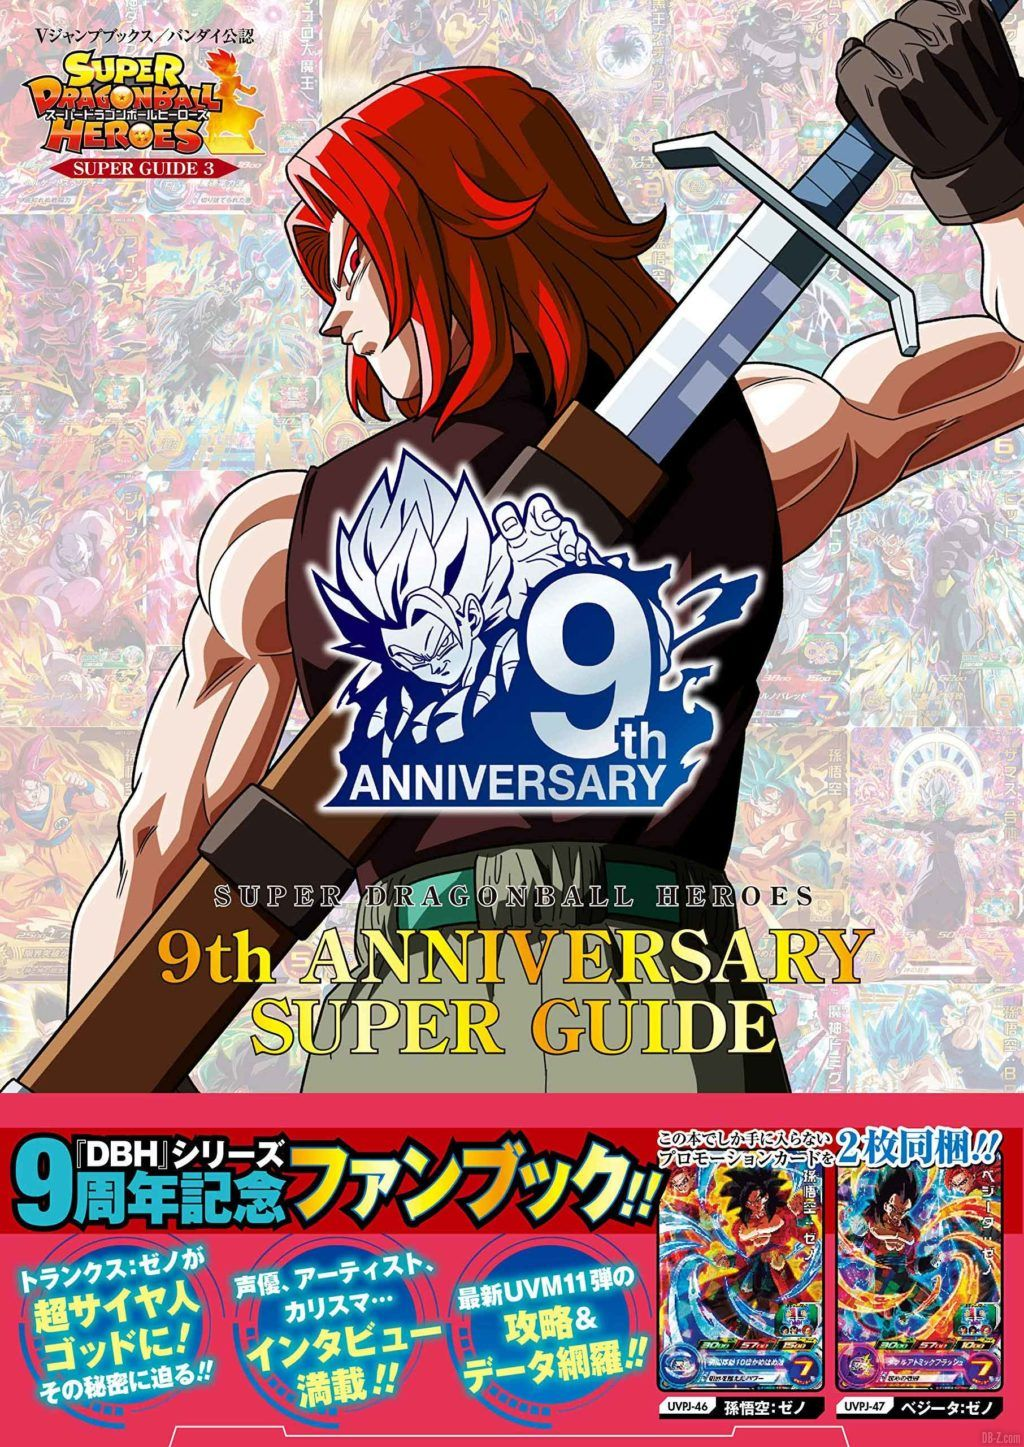 Super Dragon Ball Heroes 9th ANNIVERSARY Super Guide